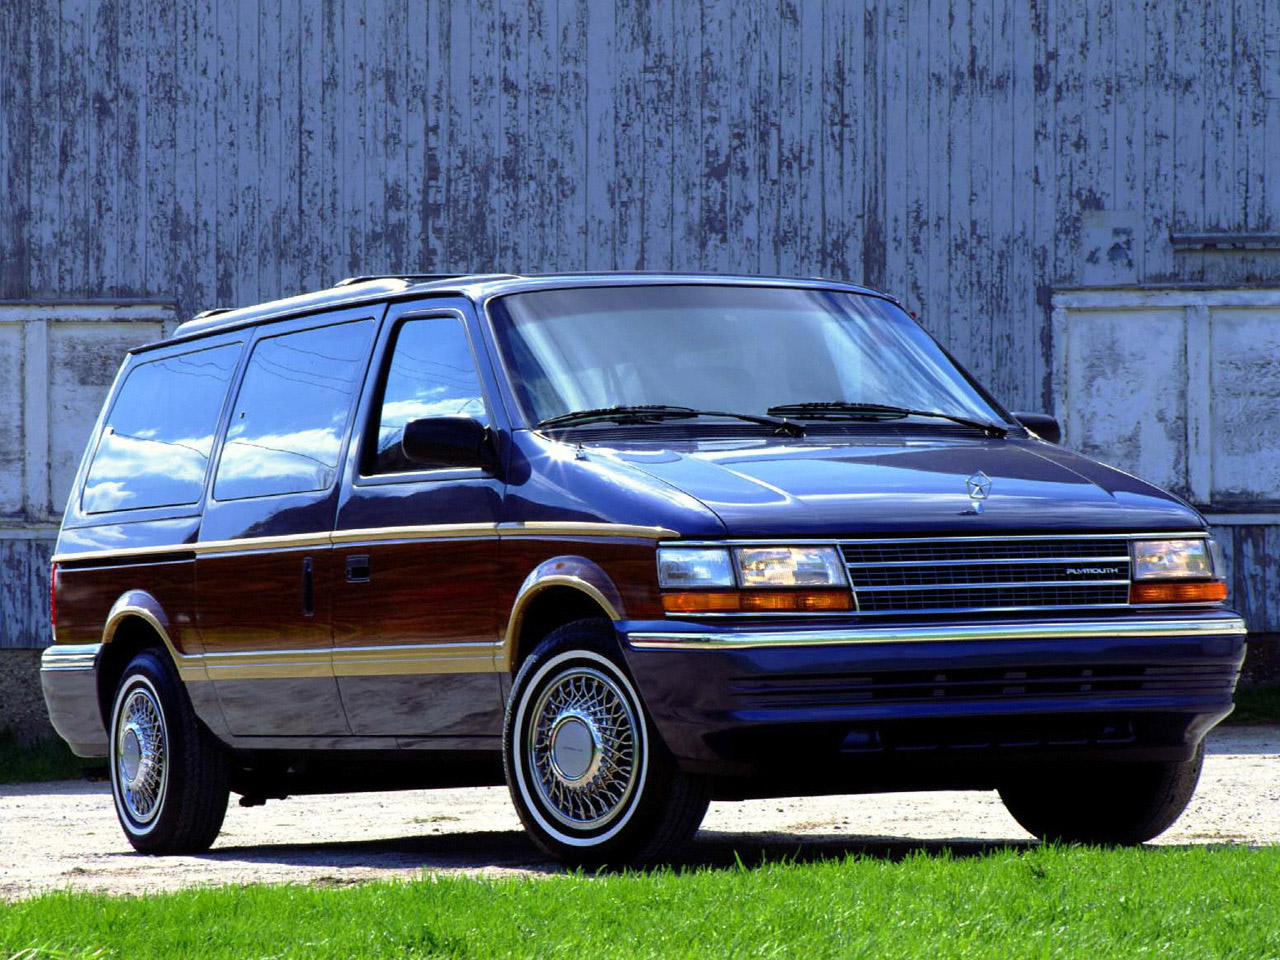 1981 plymouth voyager with Plymouth Grand Voyager on Curbside Classic 1983 Dodge Aries Original K Car together with Mercury Cougar moreover Curbside Classic 1984 Dodge Caravan likewise 1988 Plymouth Horizon Overview C15917 as well 1969 Chrysler Newport Pictures C18860 pi13972593.